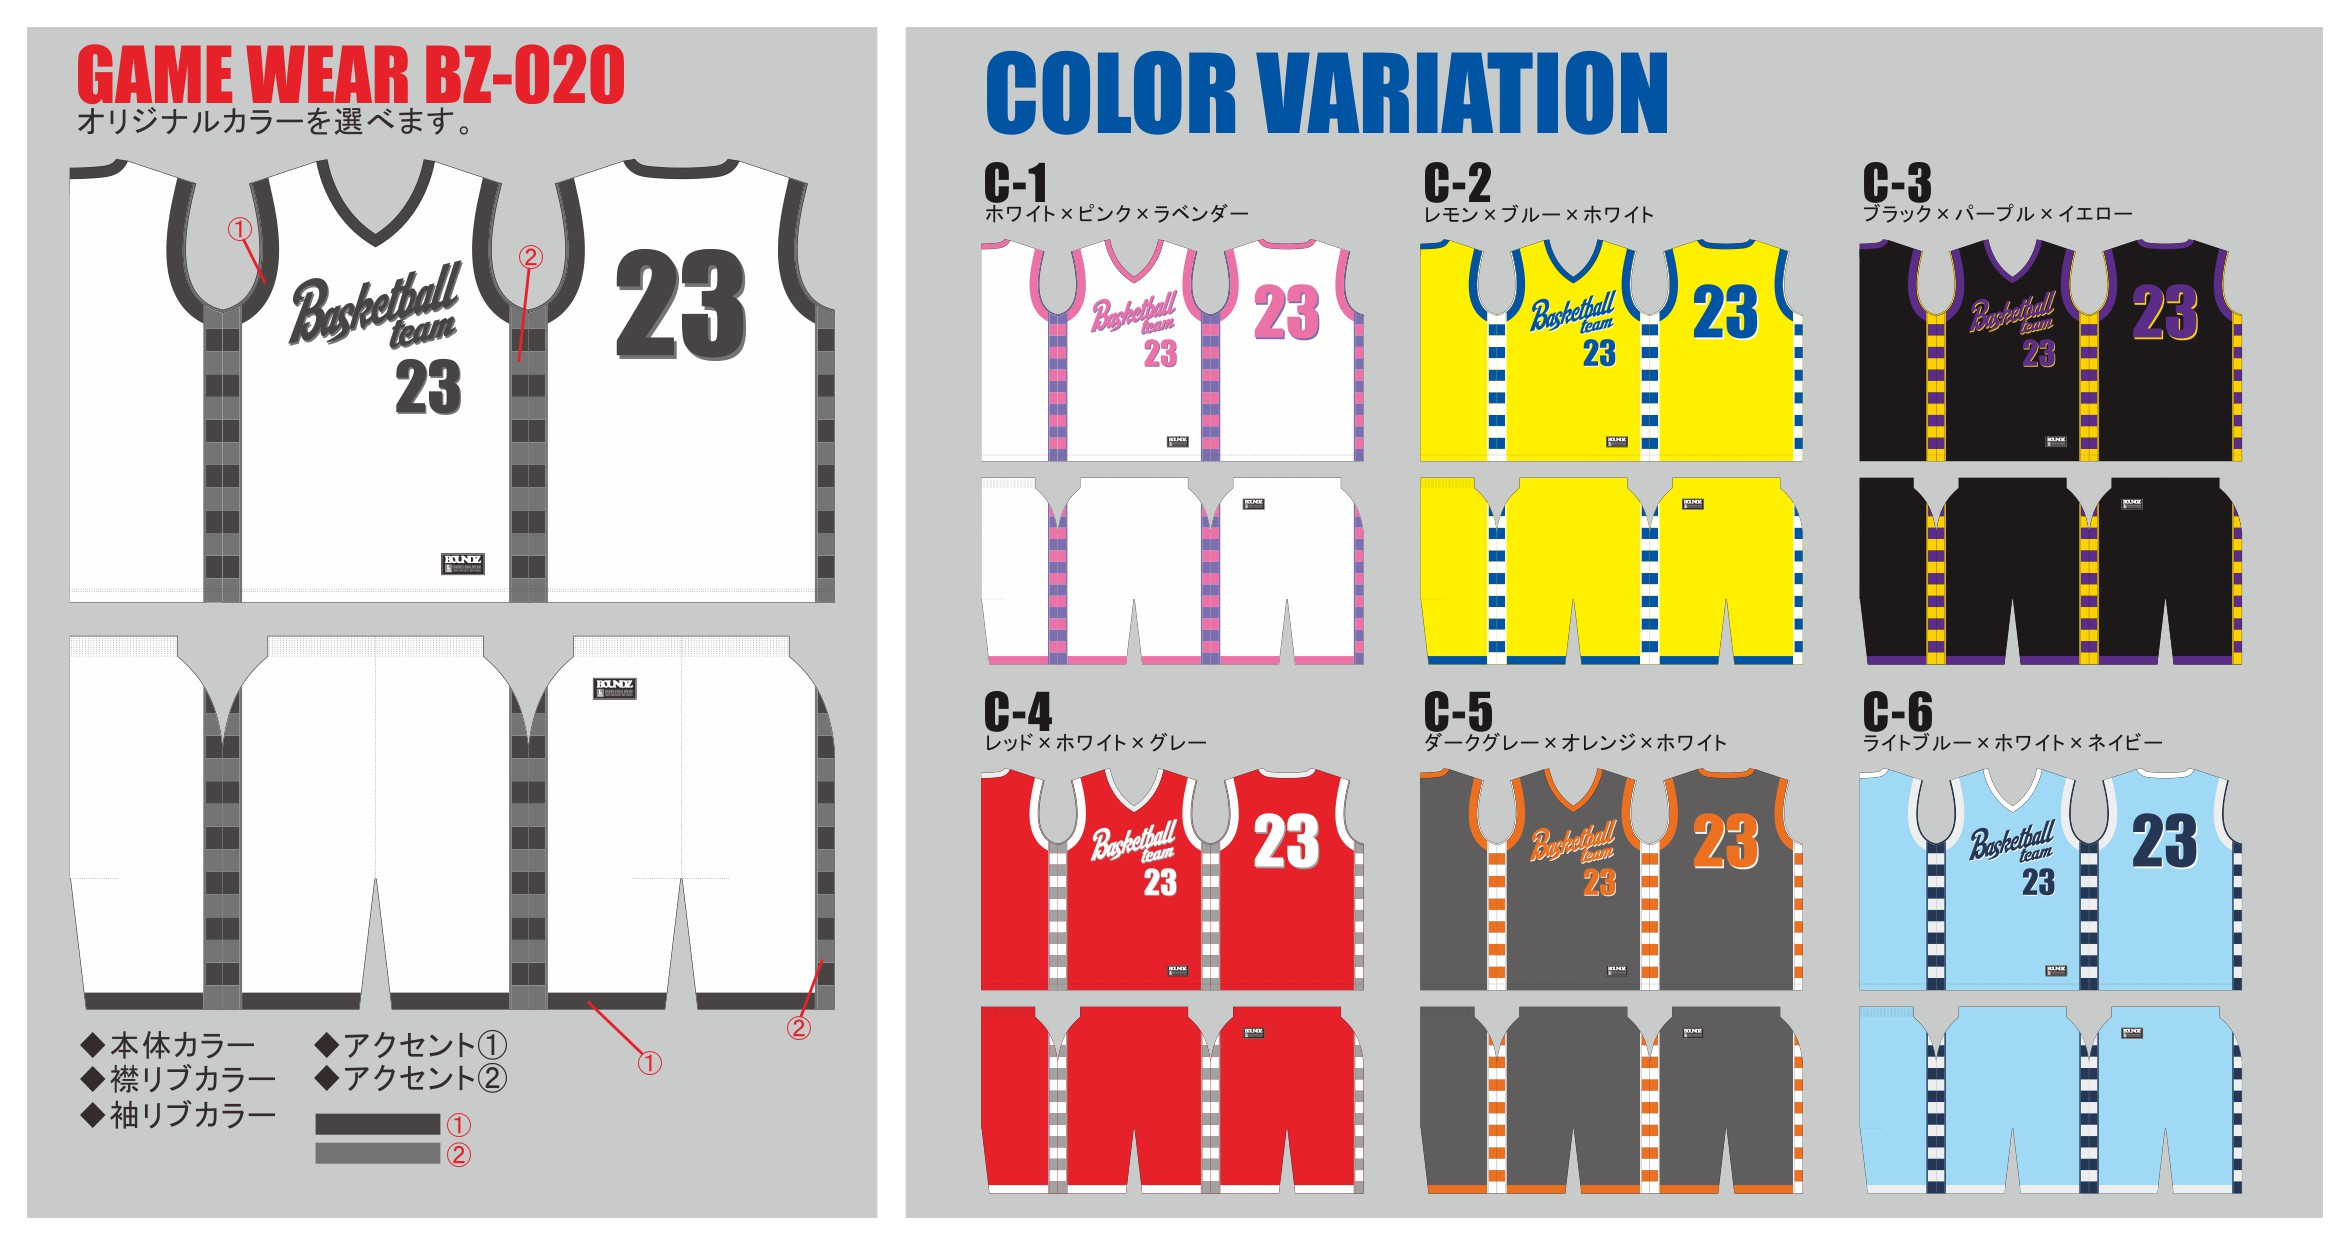 GAME_WEAR_BZ020_color